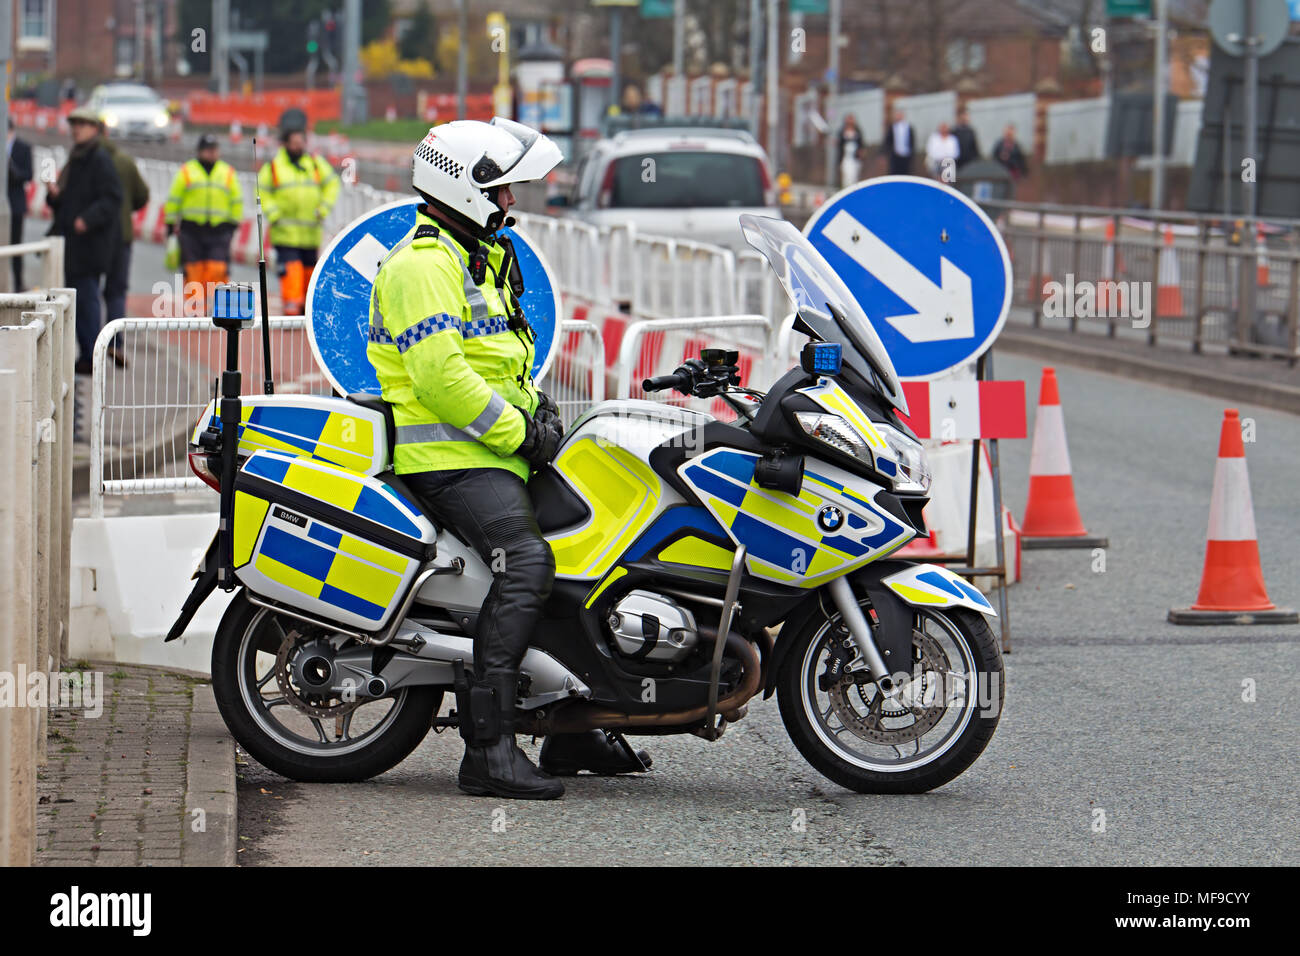 British motorcycle police officer on his BMW motorbike at the Grand National meeting in Liverpool 2018 - Stock Image